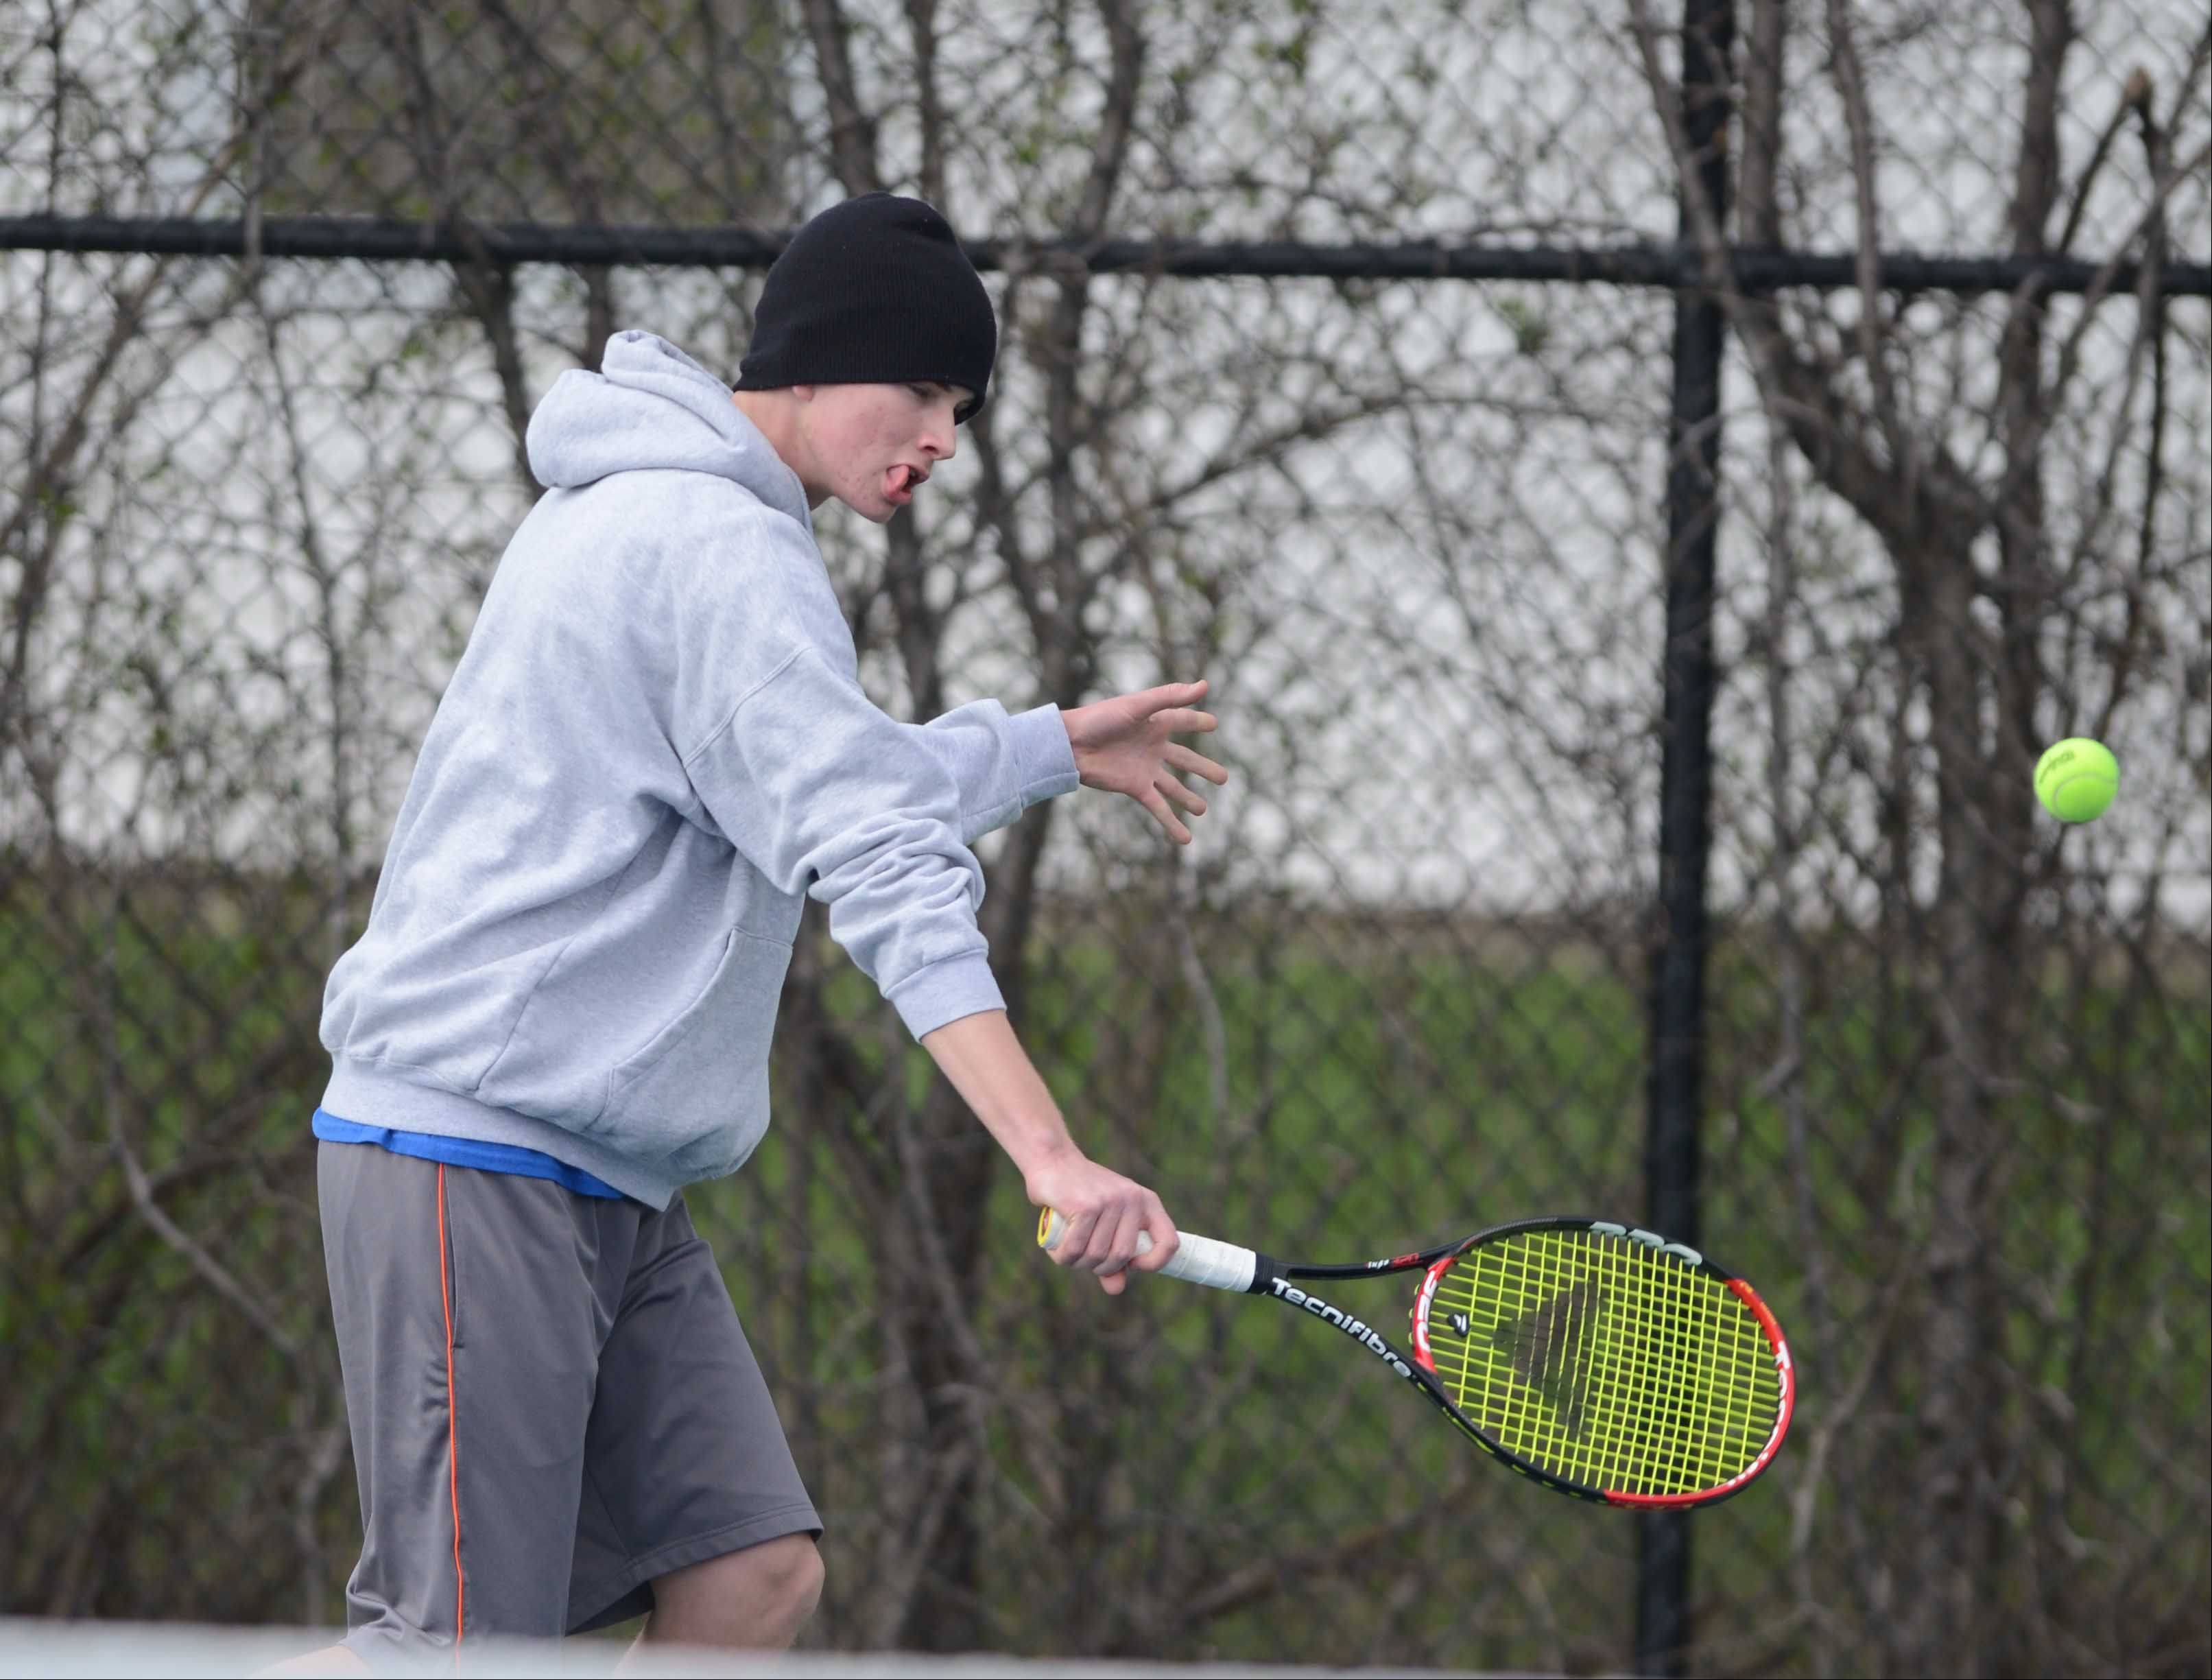 Brent Westergren of Wheaton North in the #1 singles match during the Glenbard West at Wheaton North boys tennis meet Wednesday.